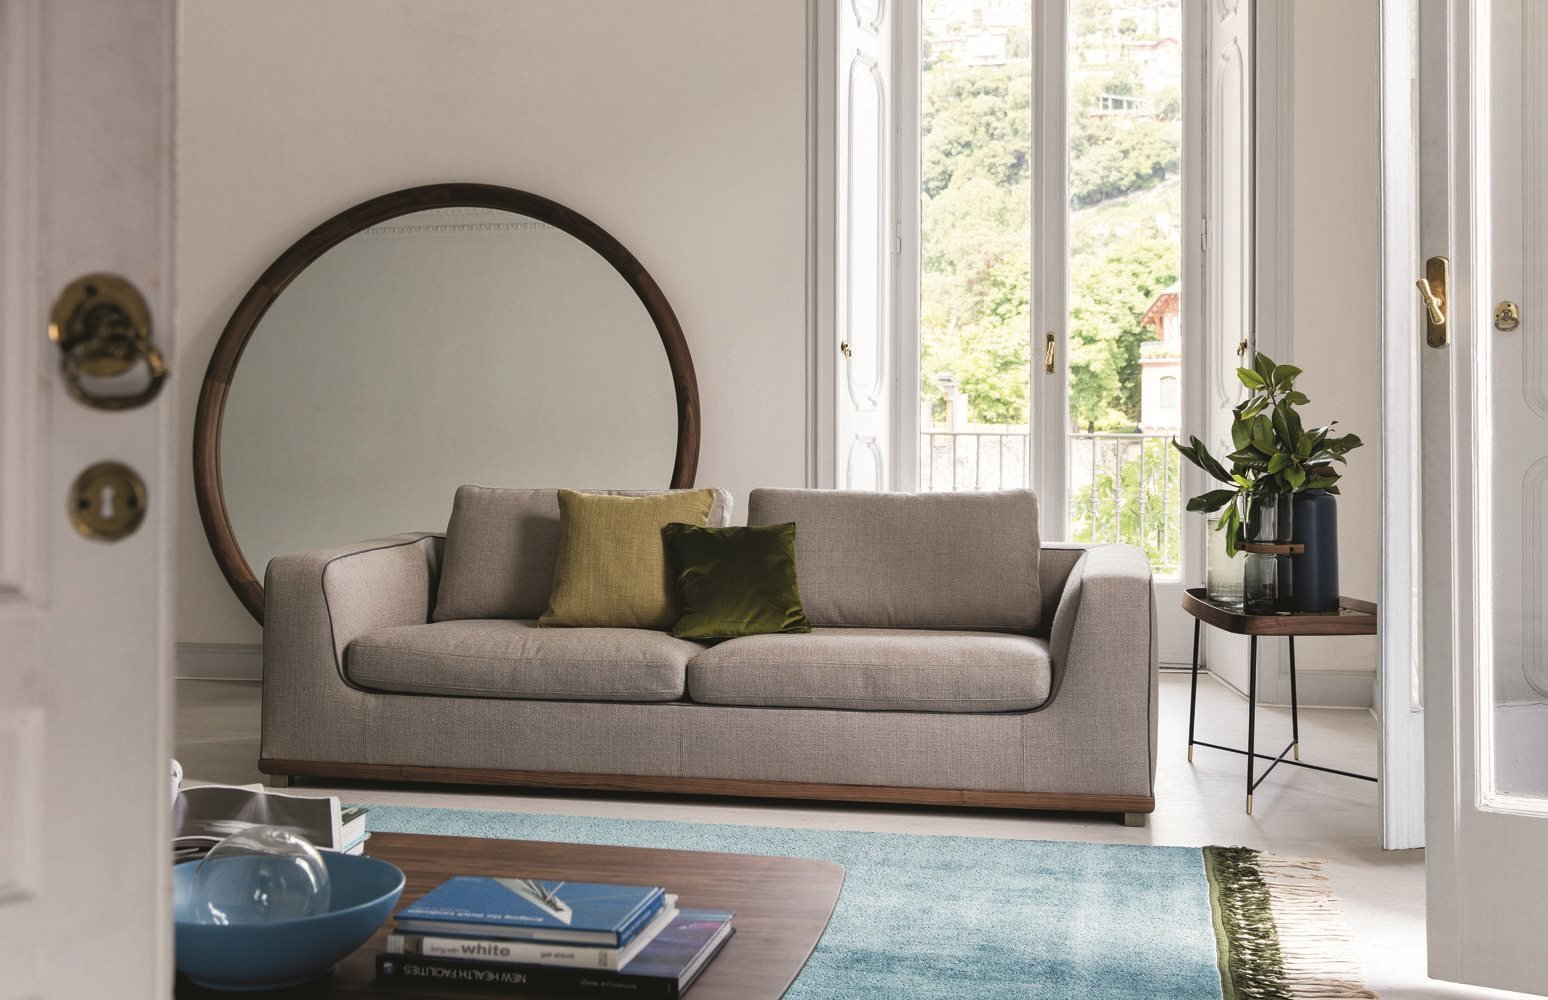 Kirk Modular Sofa from Porada, designed by C. Ballabio